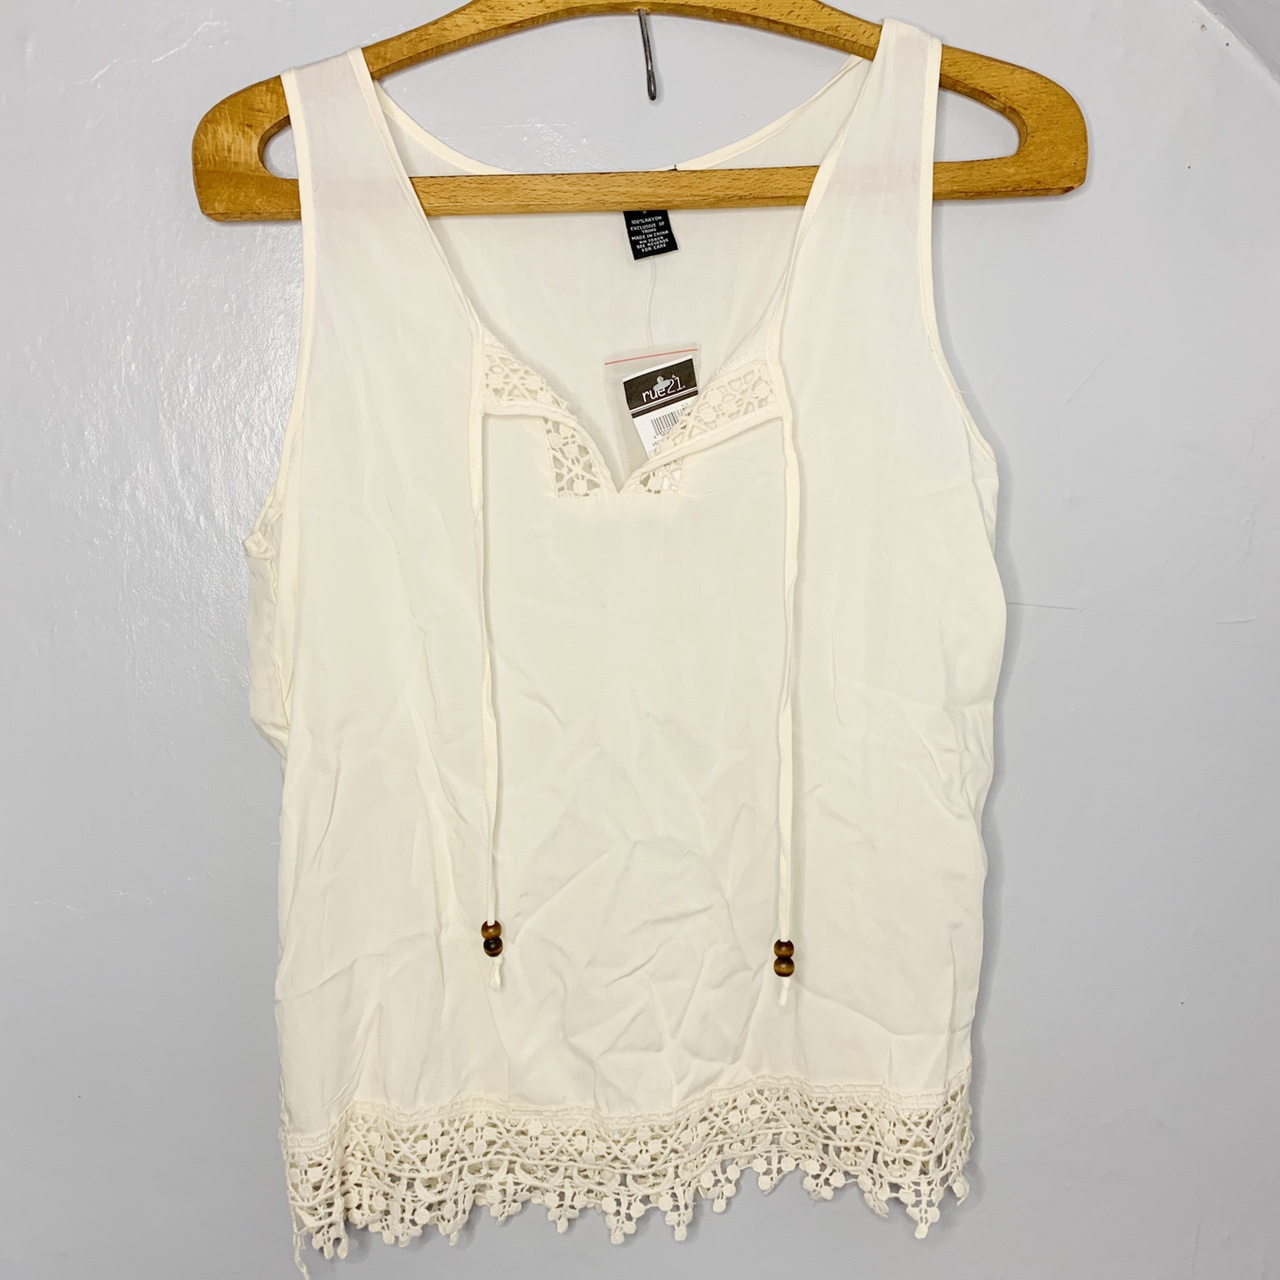 Product Image 1 - Adorable cream colored tank top